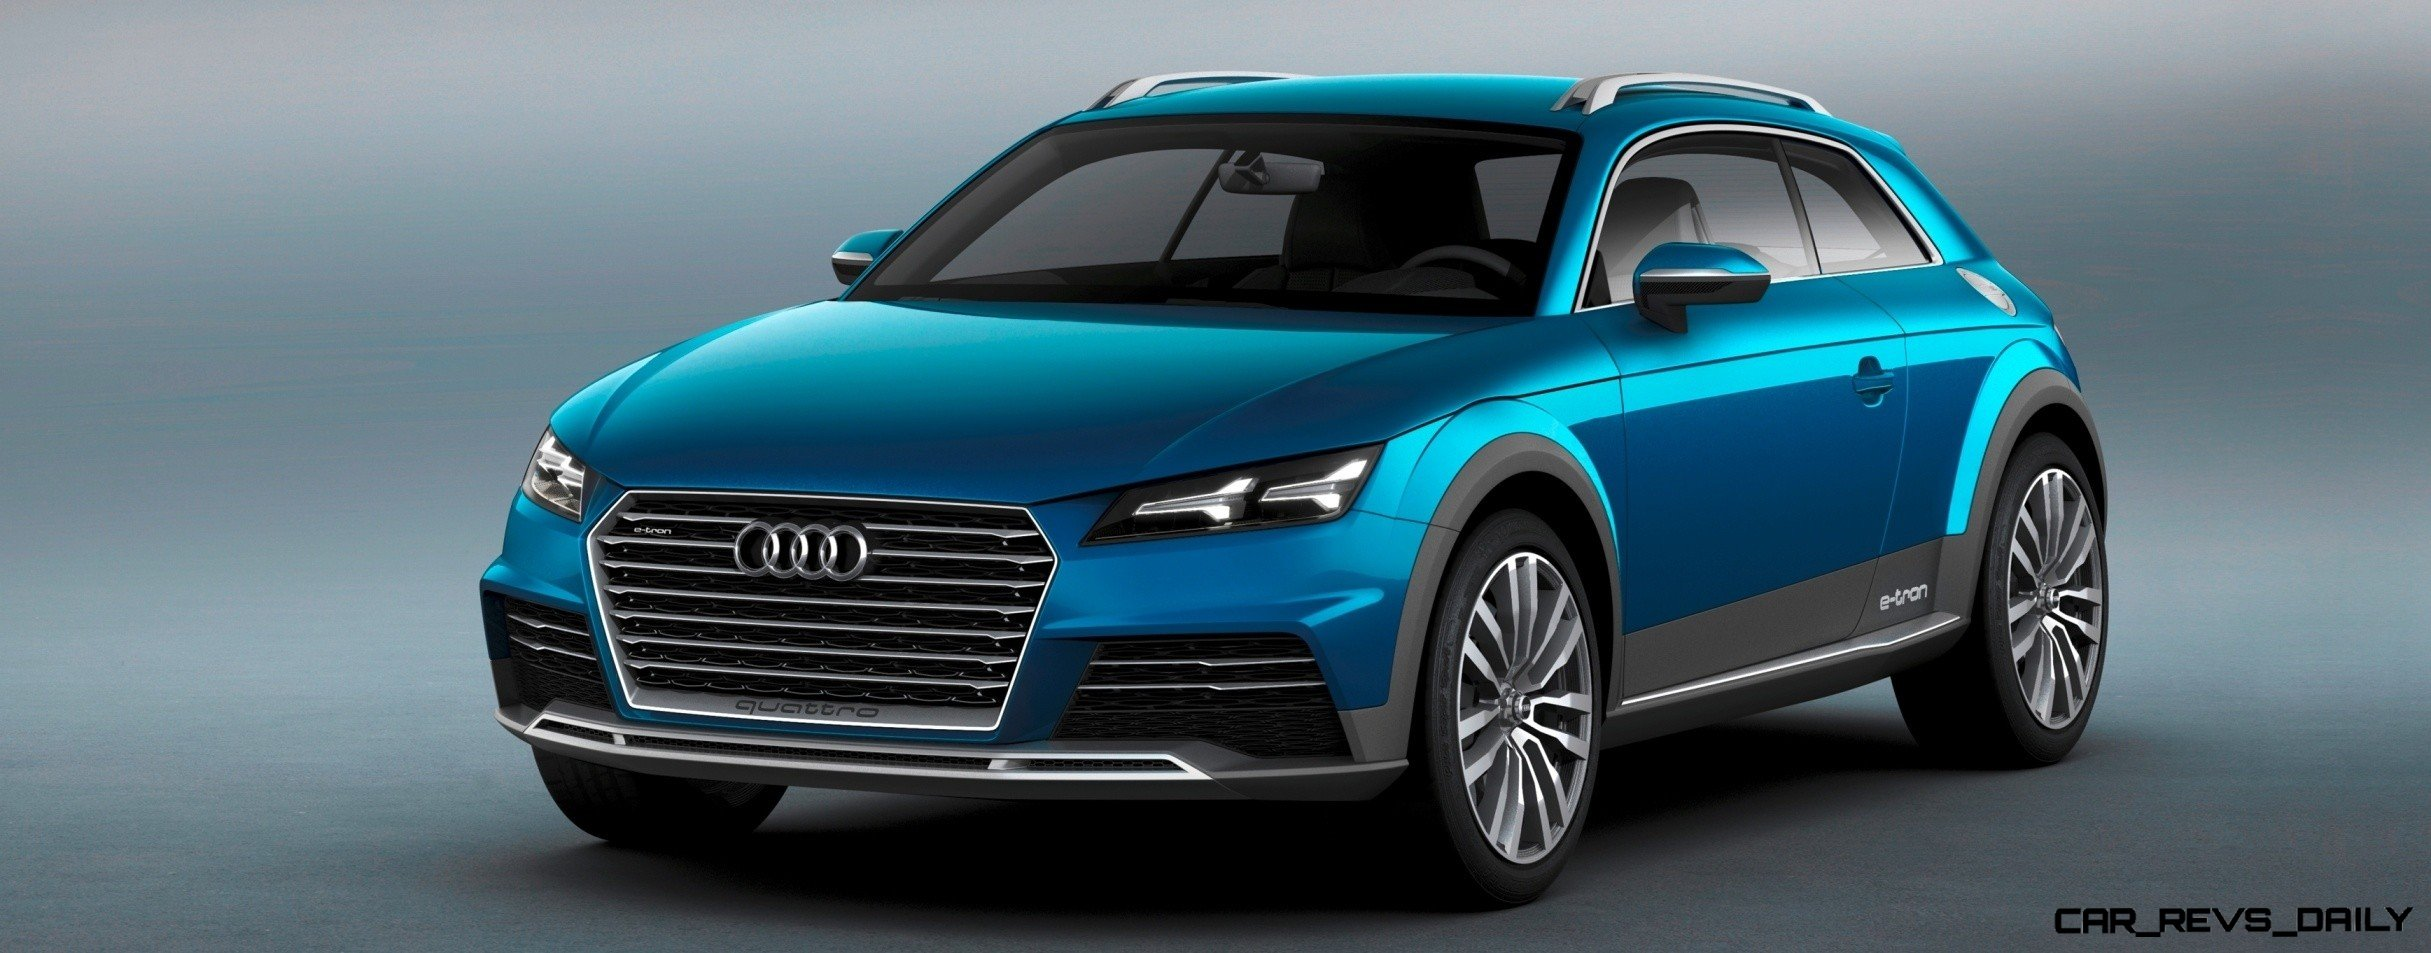 to 60mph 148mpg plug in hybrid awd audi tt offroad concept a sure thing as future q2. Black Bedroom Furniture Sets. Home Design Ideas